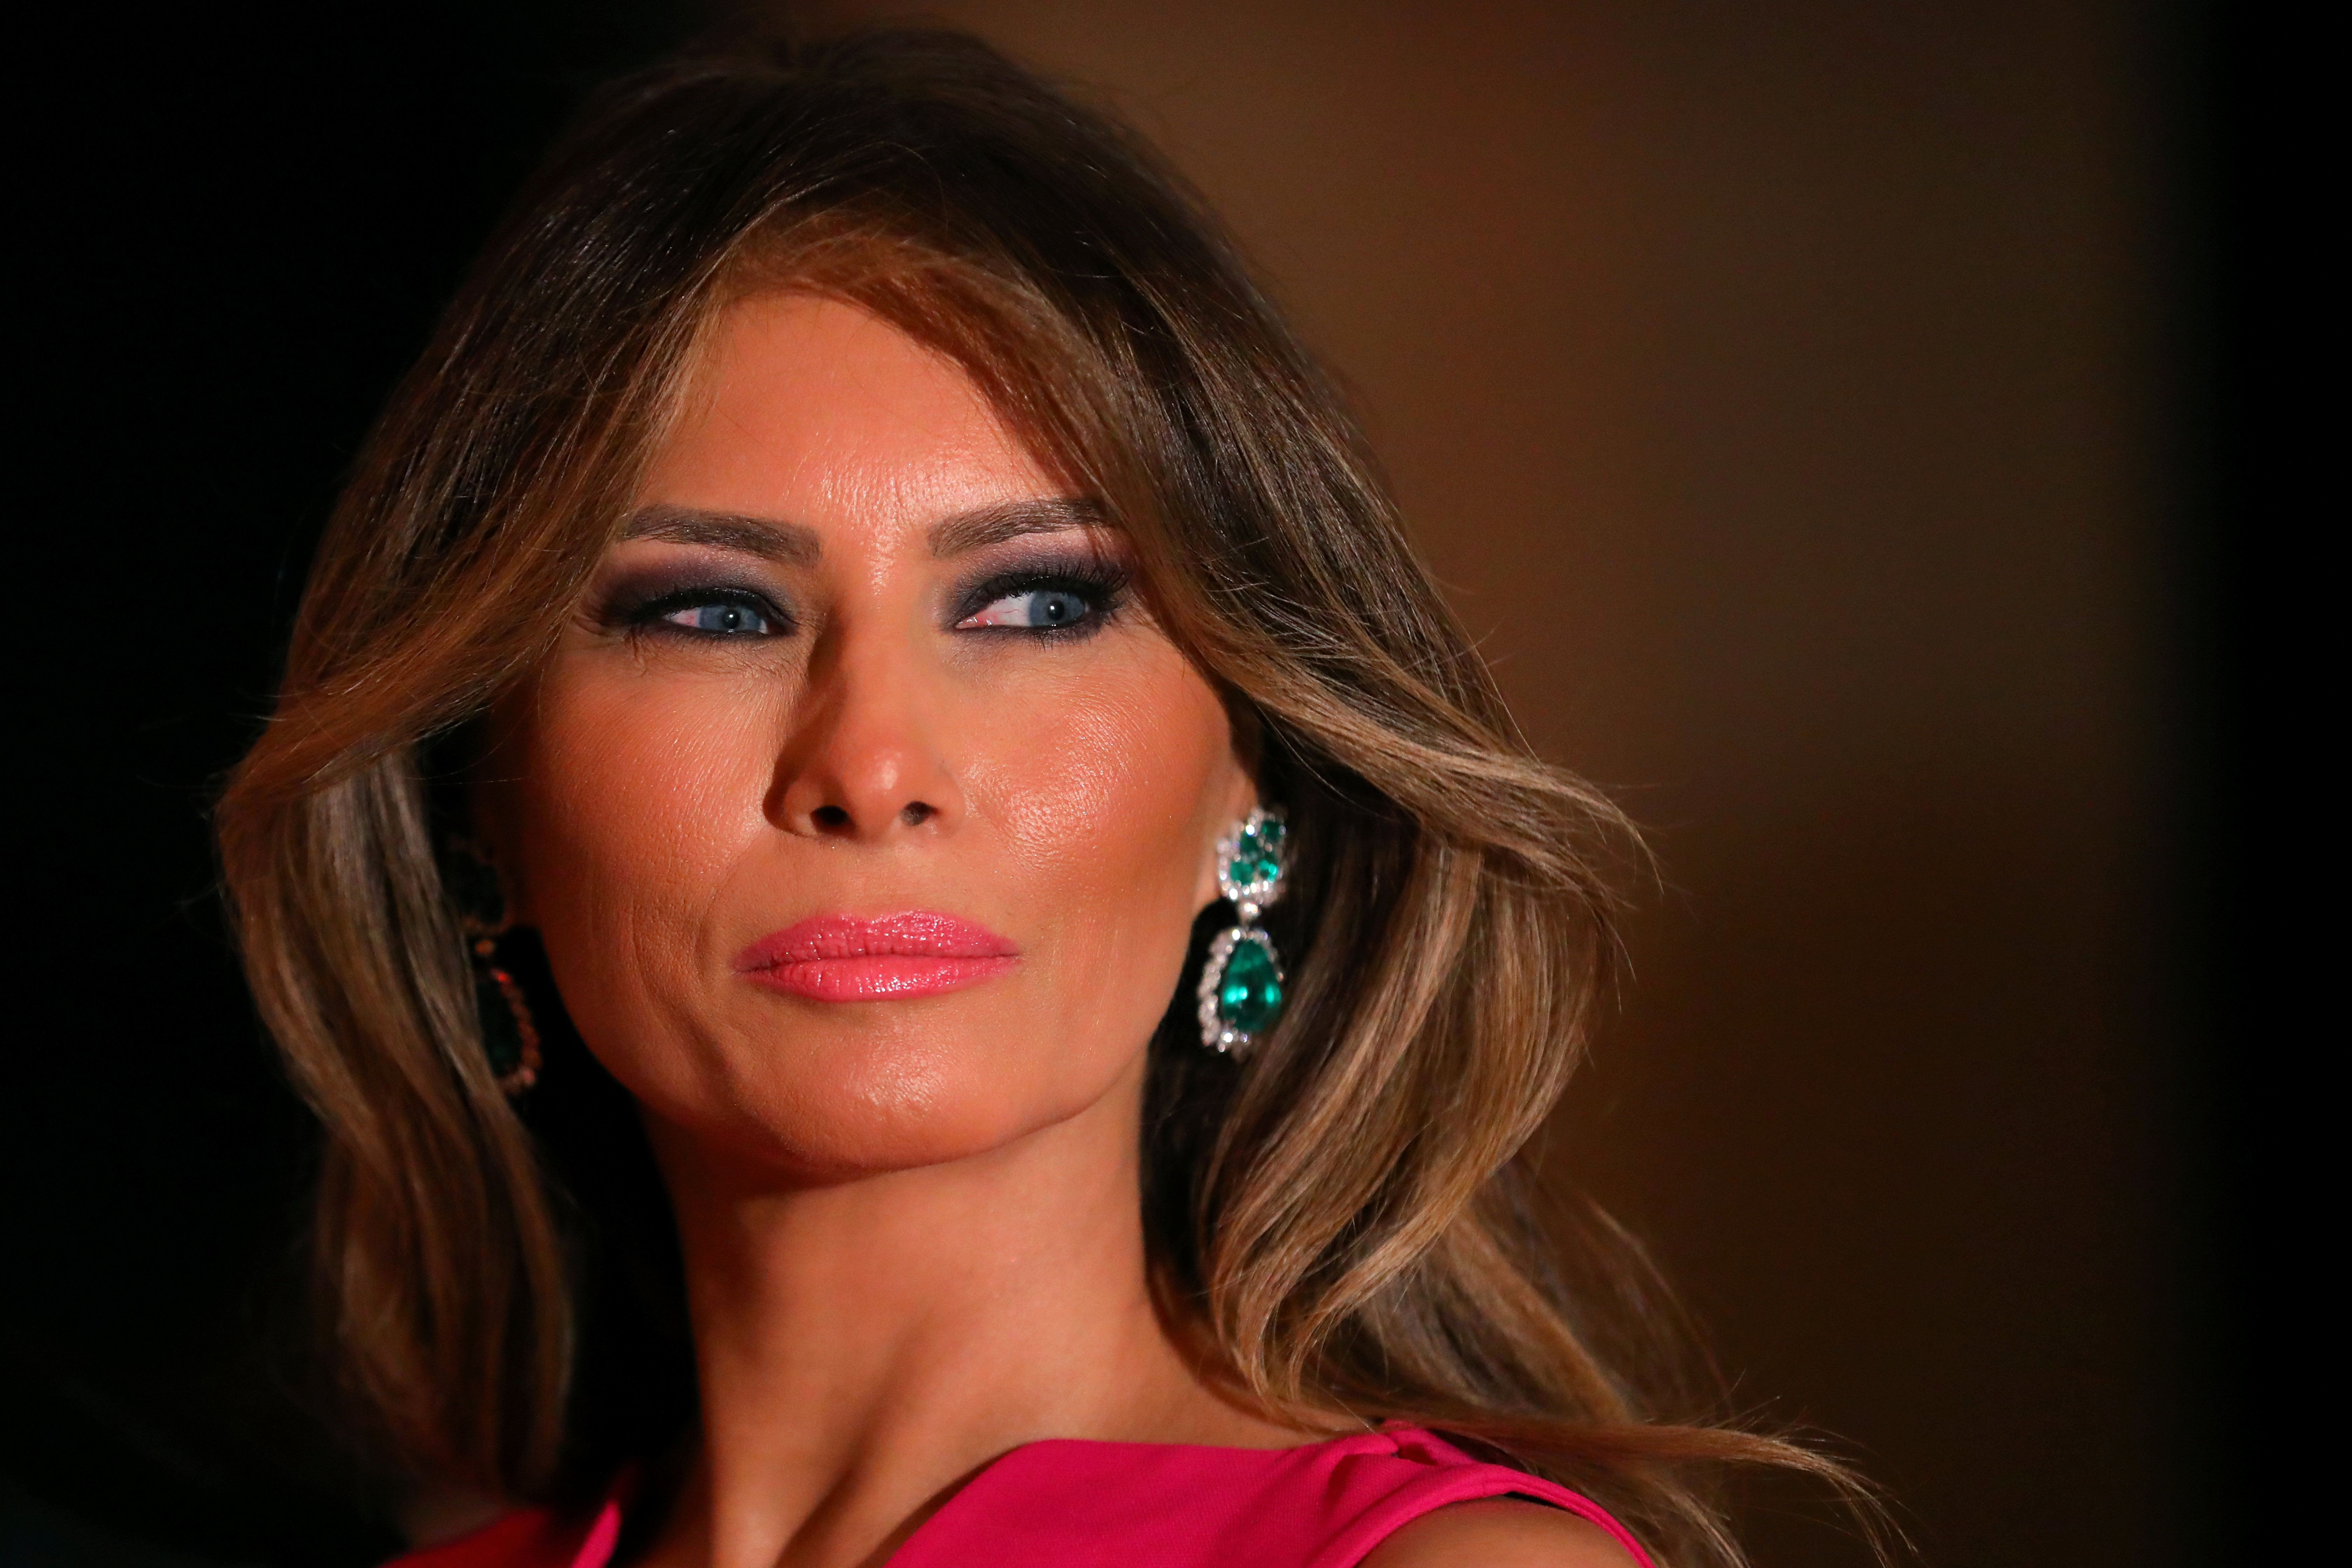 First Lady Melania Trump and U.S. President Donald Trump (not pictured) attend the 60th Annual Red Cross Gala at Mar-a-Lago club in Palm Beach, Florida, U.S., February 4, 2017. REUTERS/Carlos Barria